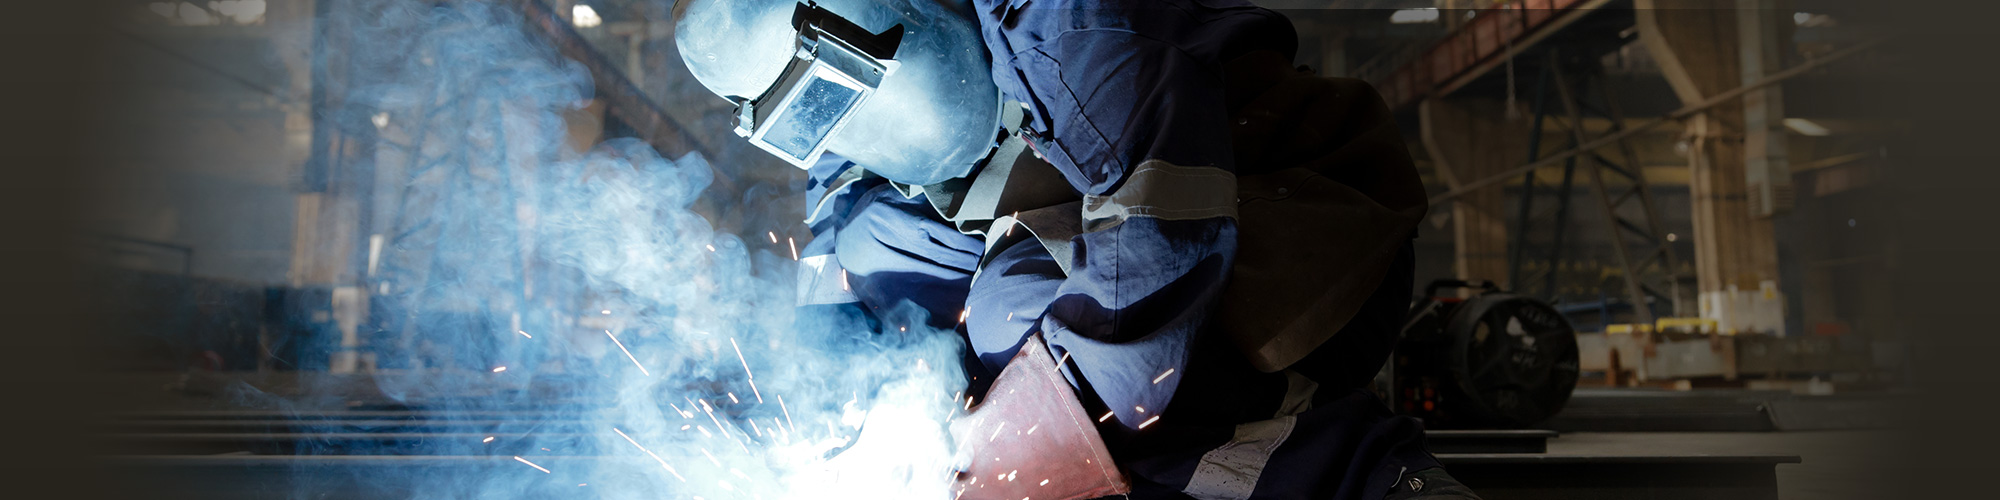 welder with a mask welding